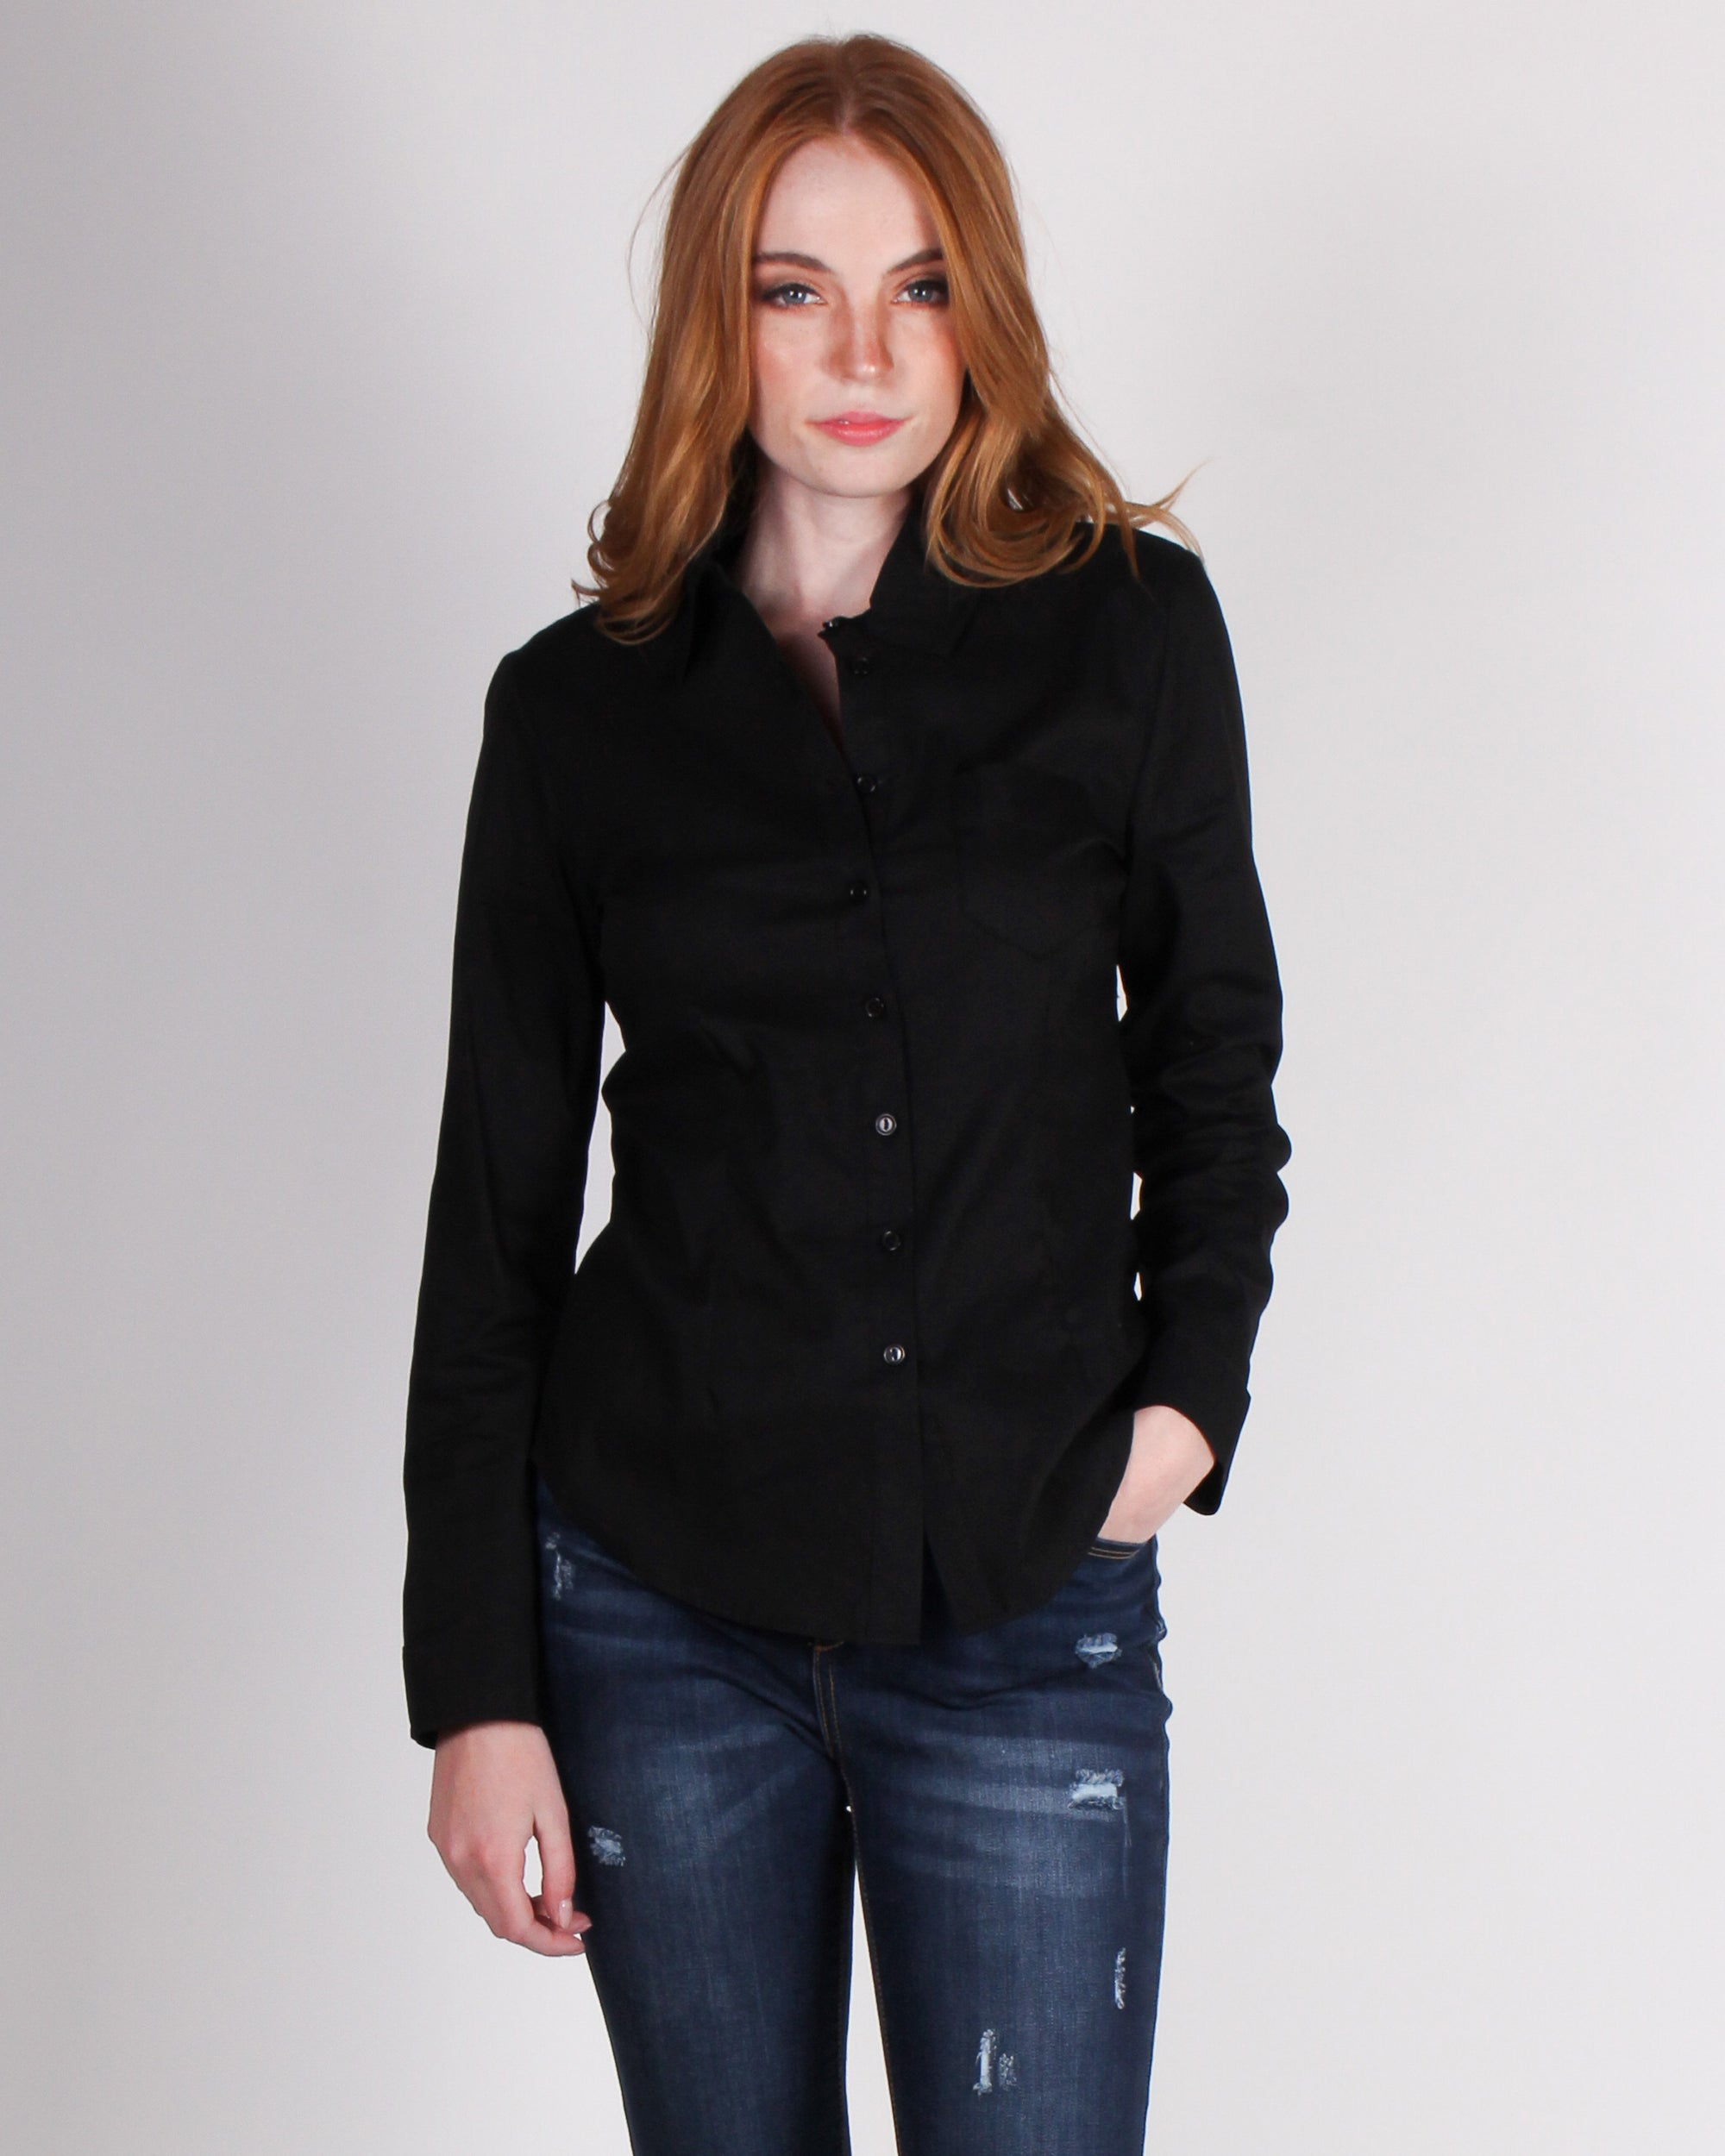 Fashion Q Shop Q High Standards Button Up Top (Black) HT4106